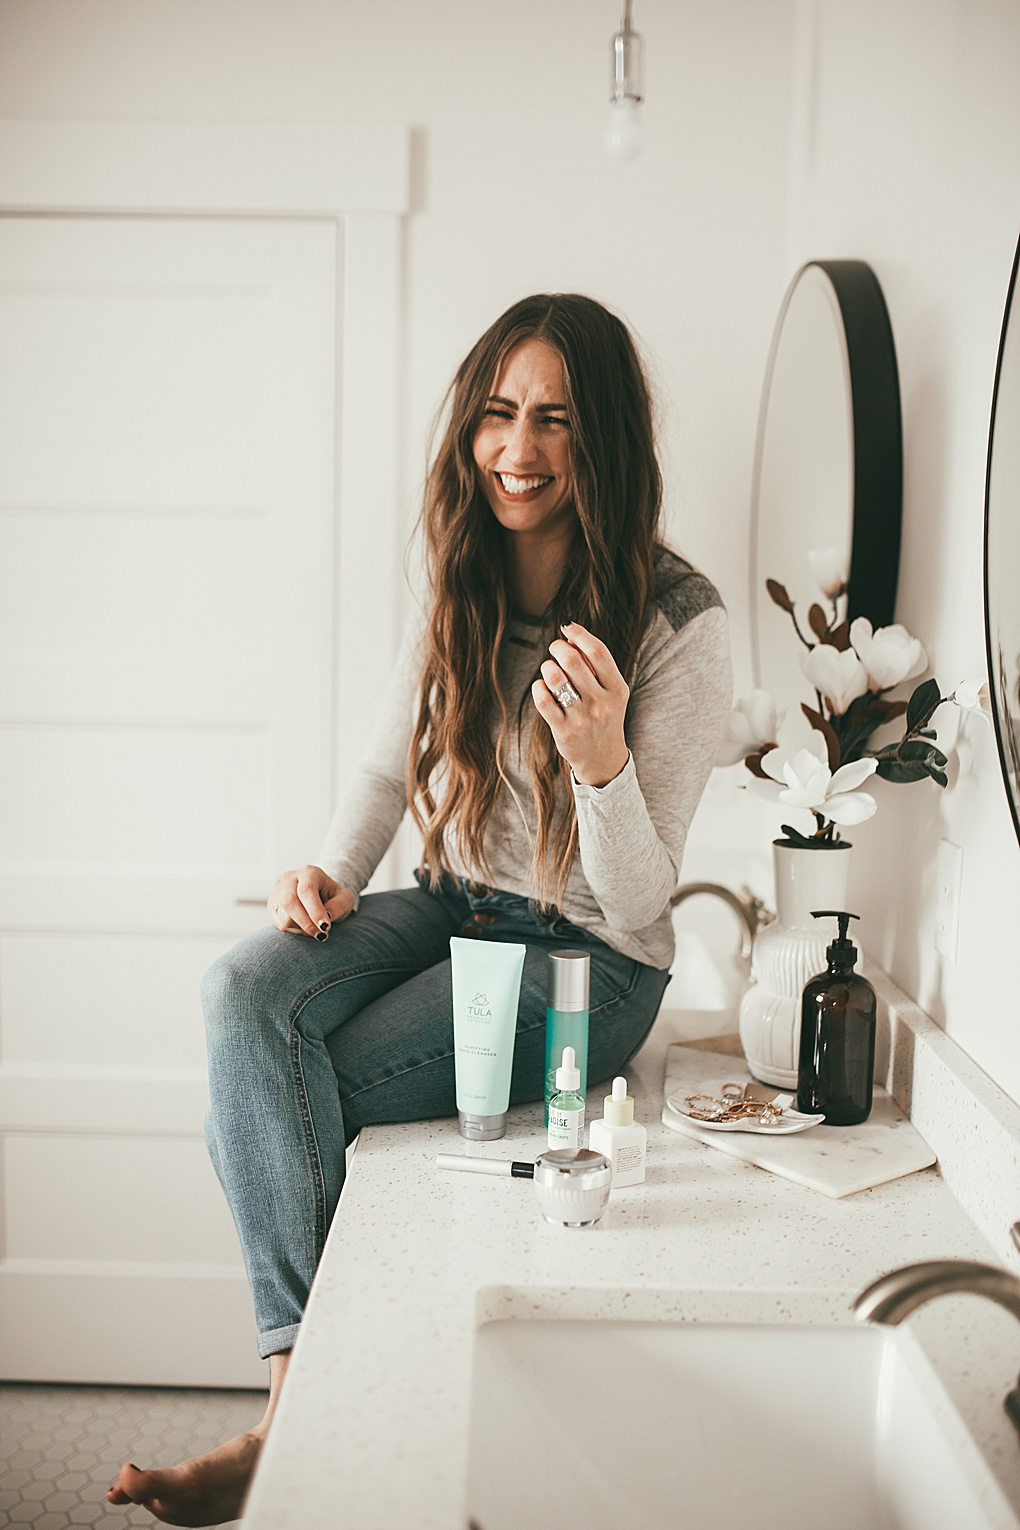 Need help updating your skin care routine? Utah style blogger Dani Marie is sharing her current skin care routine. See it HERE!